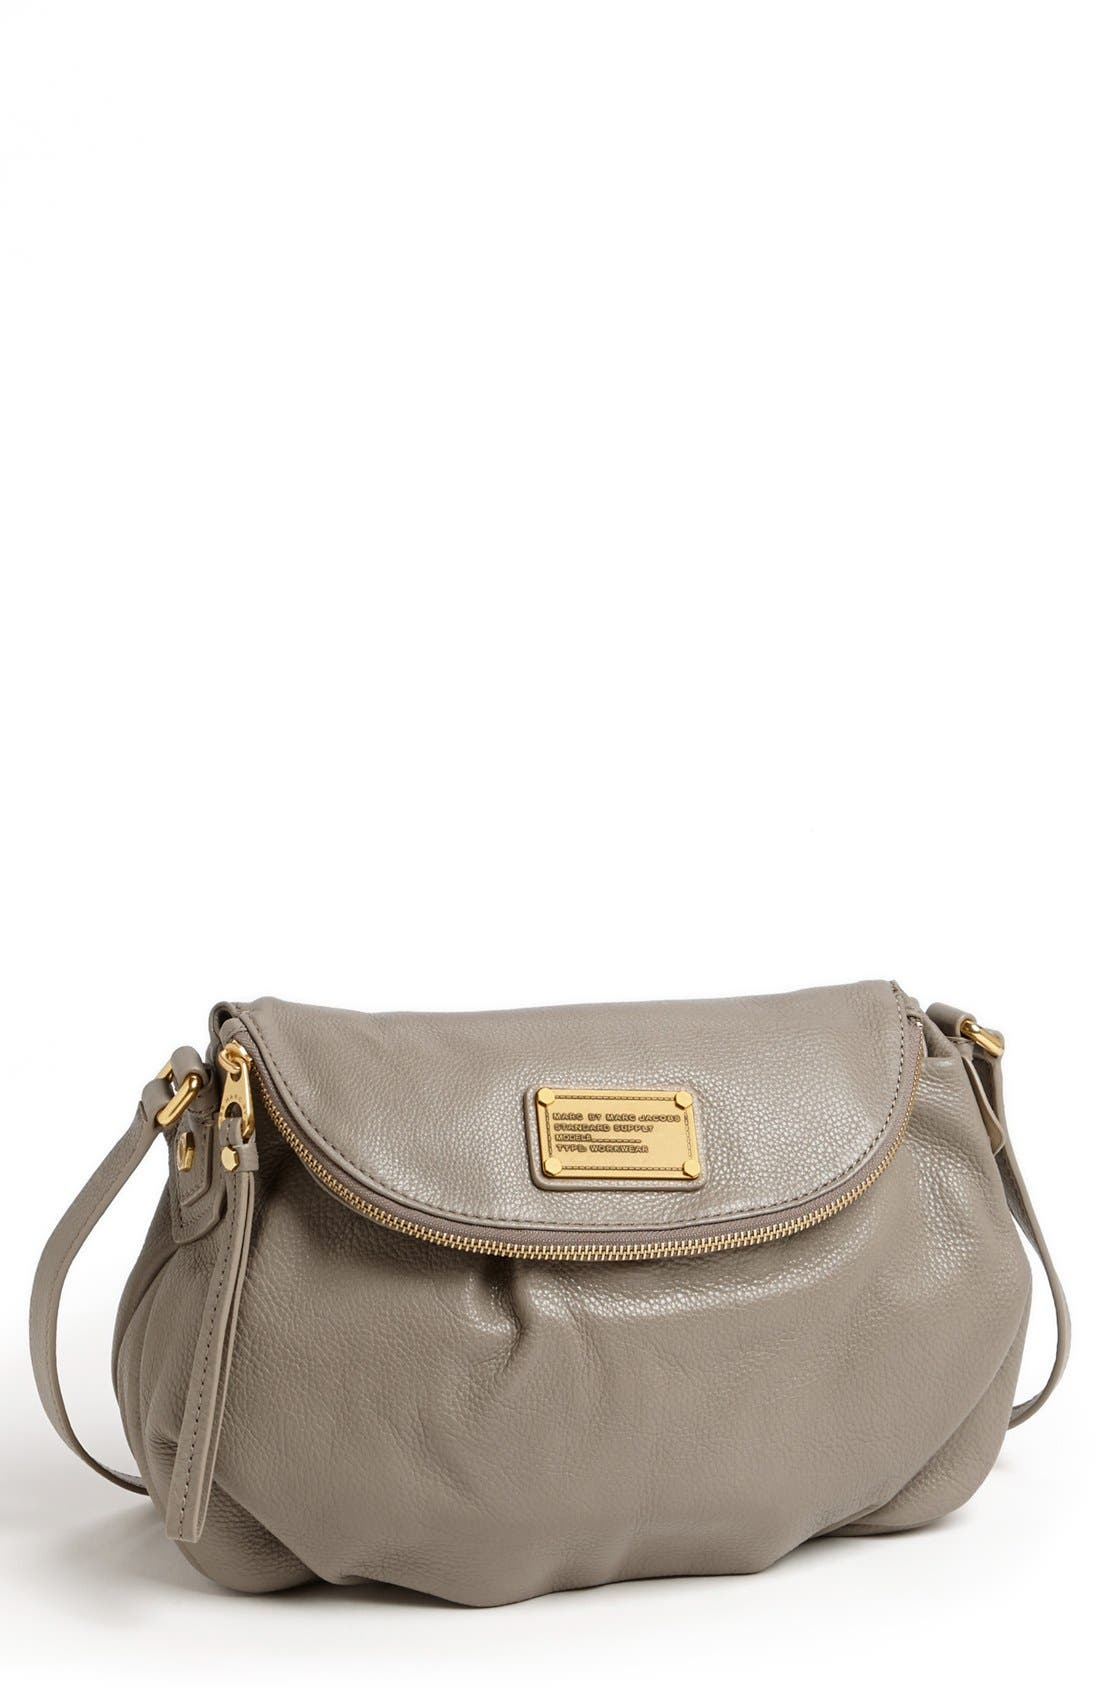 MARC BY MARC JACOBS 'Classic Q - Natasha' Crossbody Bag,                             Main thumbnail 2, color,